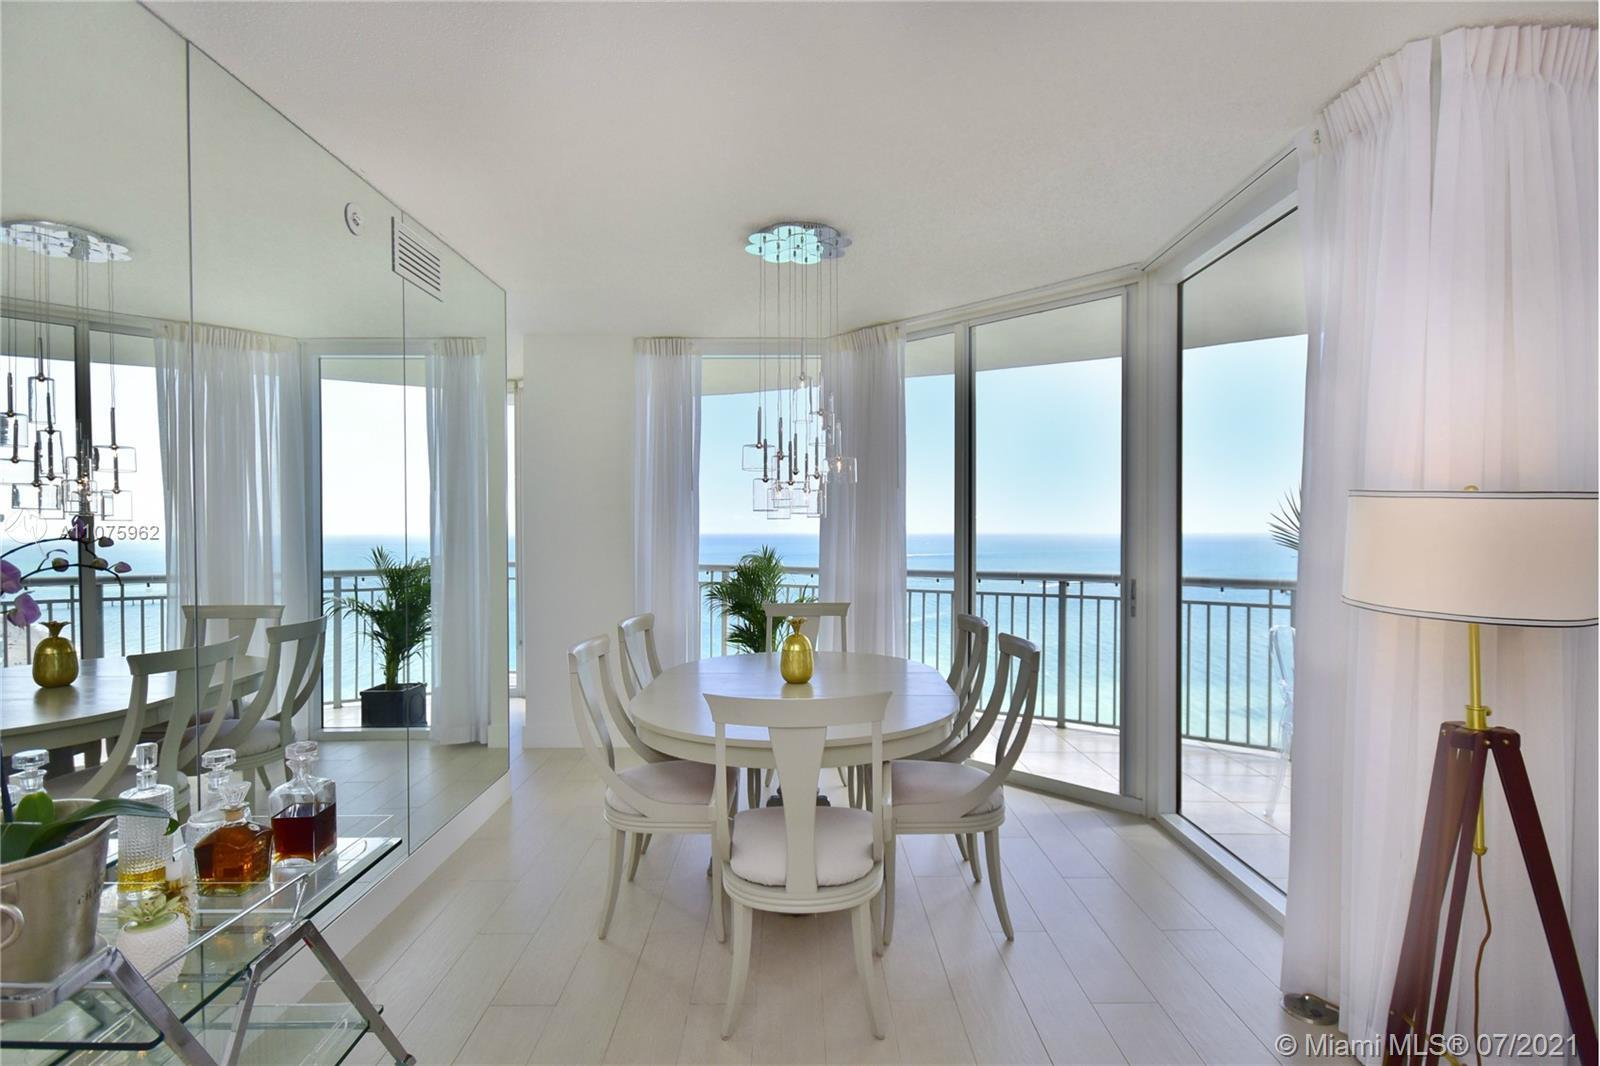 Most desirable corner residence facing south east with dazzling direct ocean views. Unit was totally